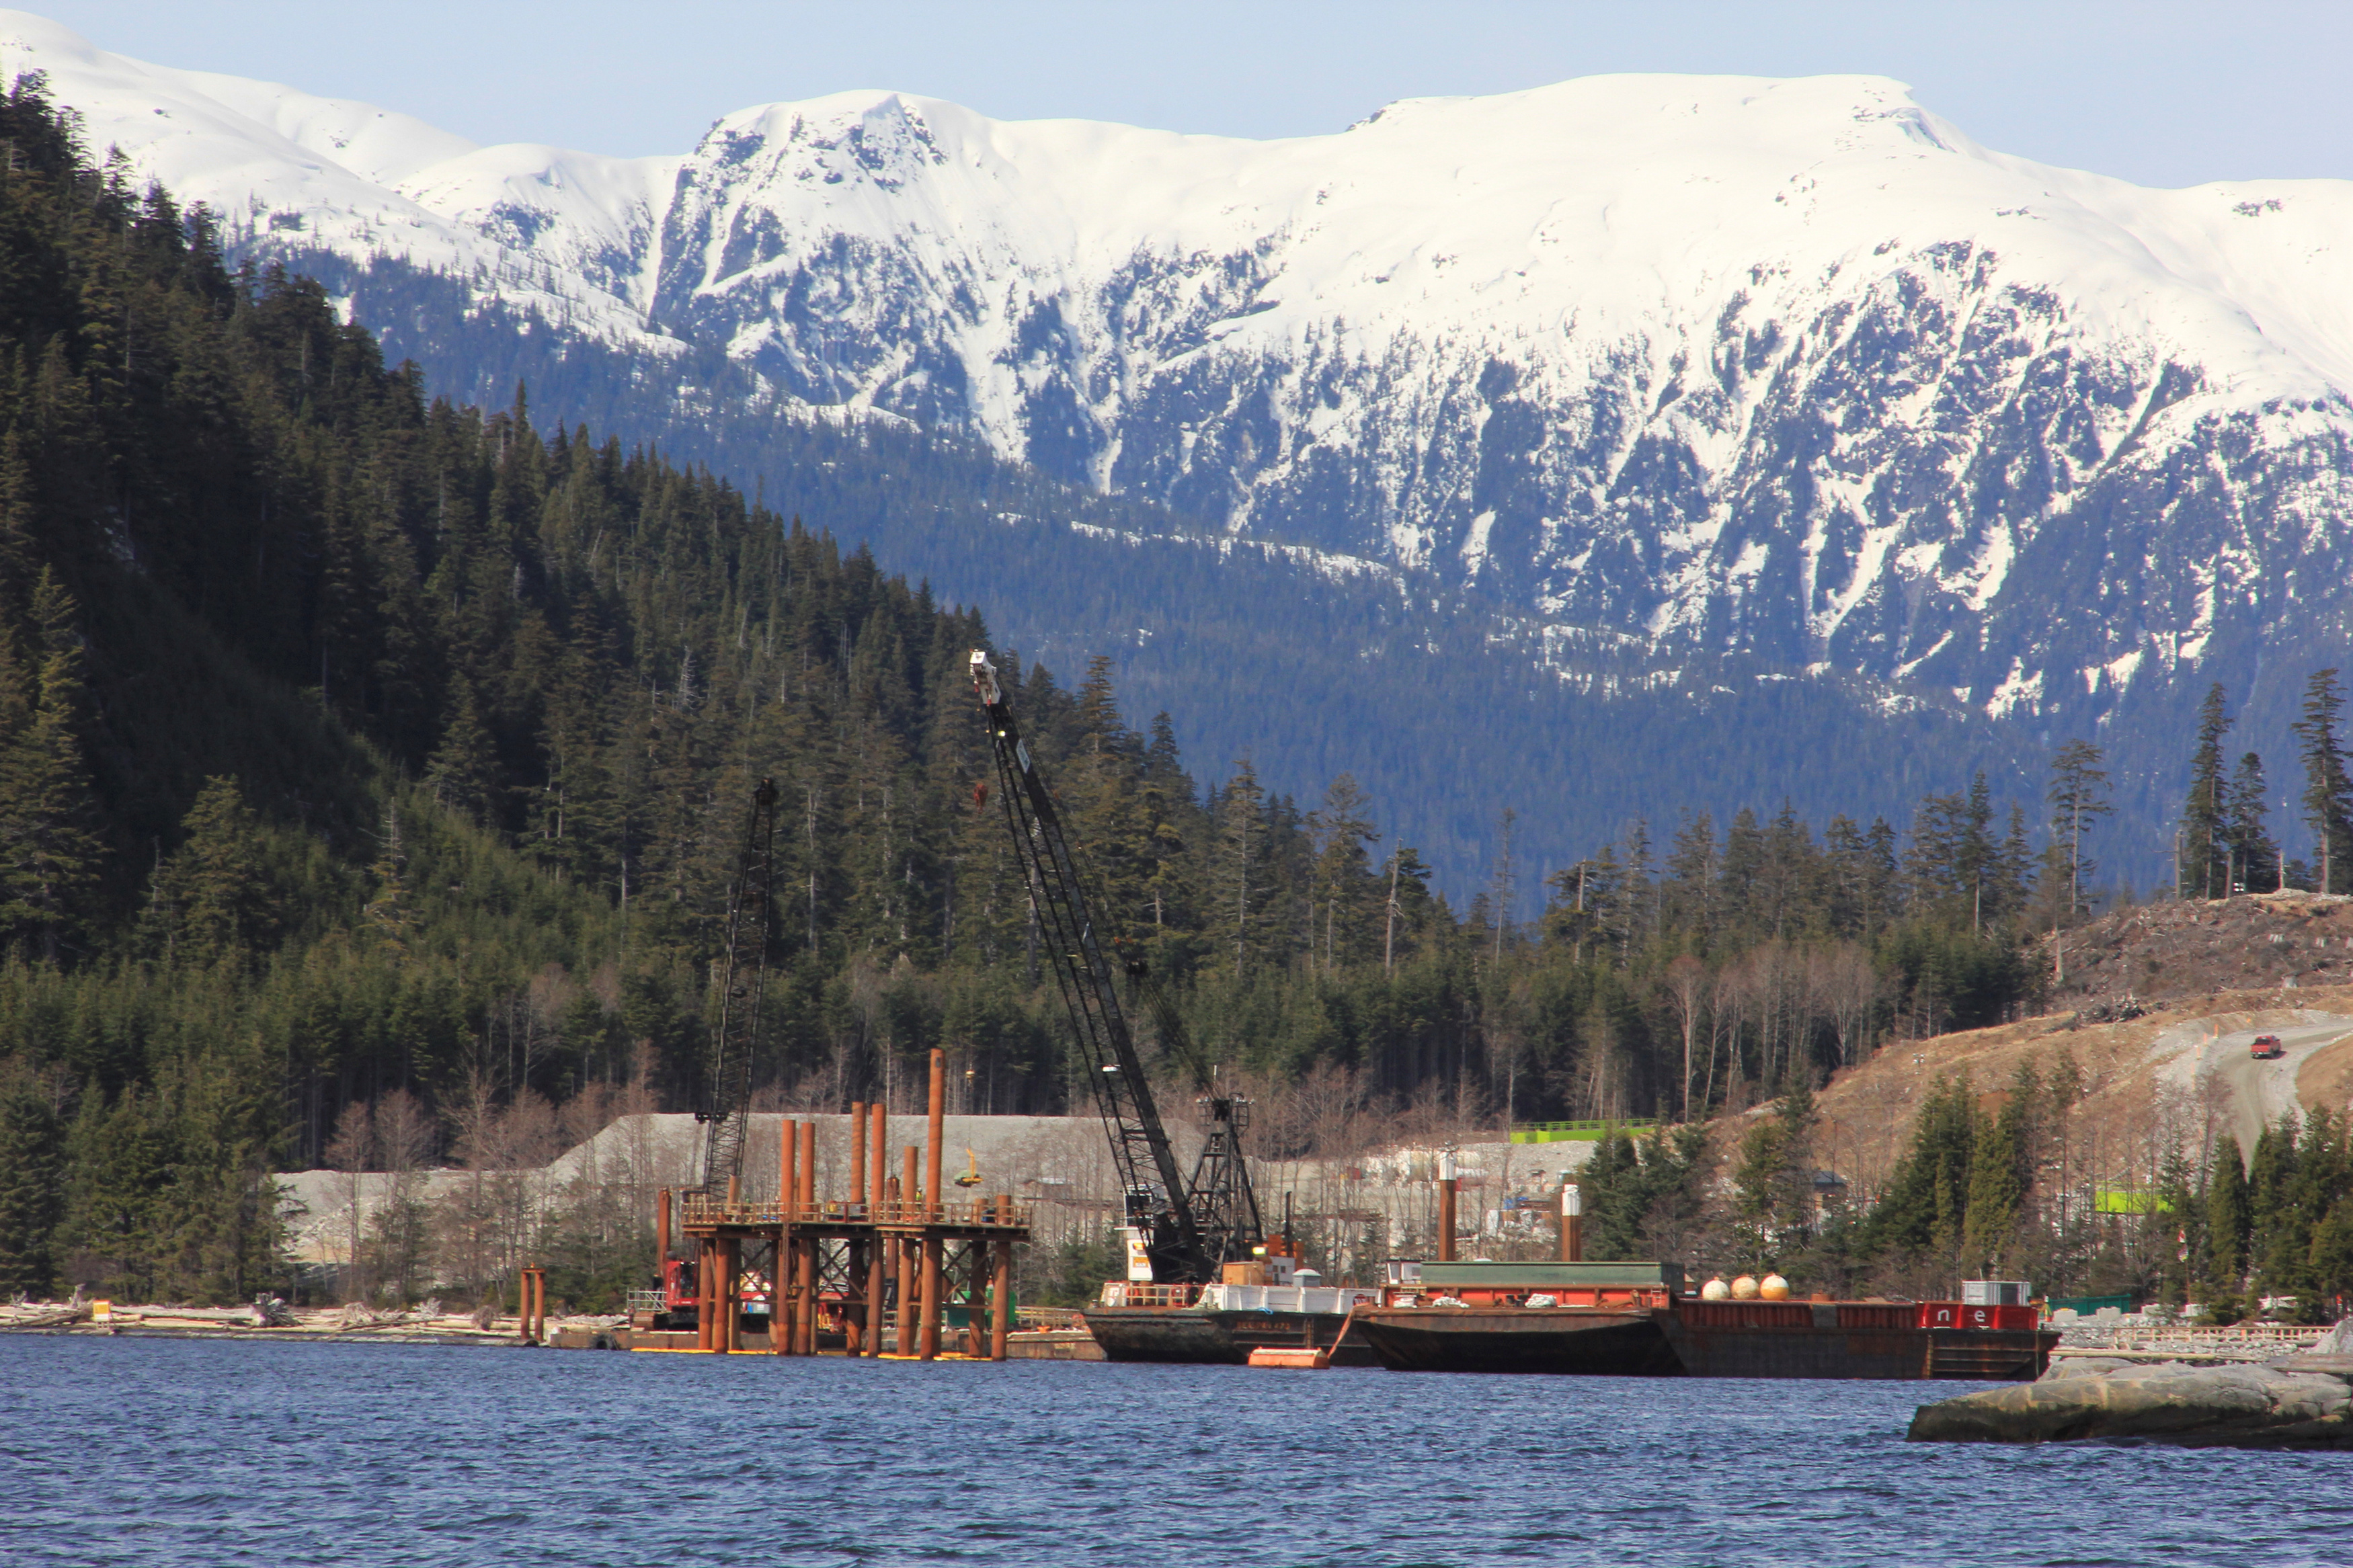 FILE PHOTO: Cranes in the water at the Kitimat LNG site near Kitimat, in northwestern British Columbia